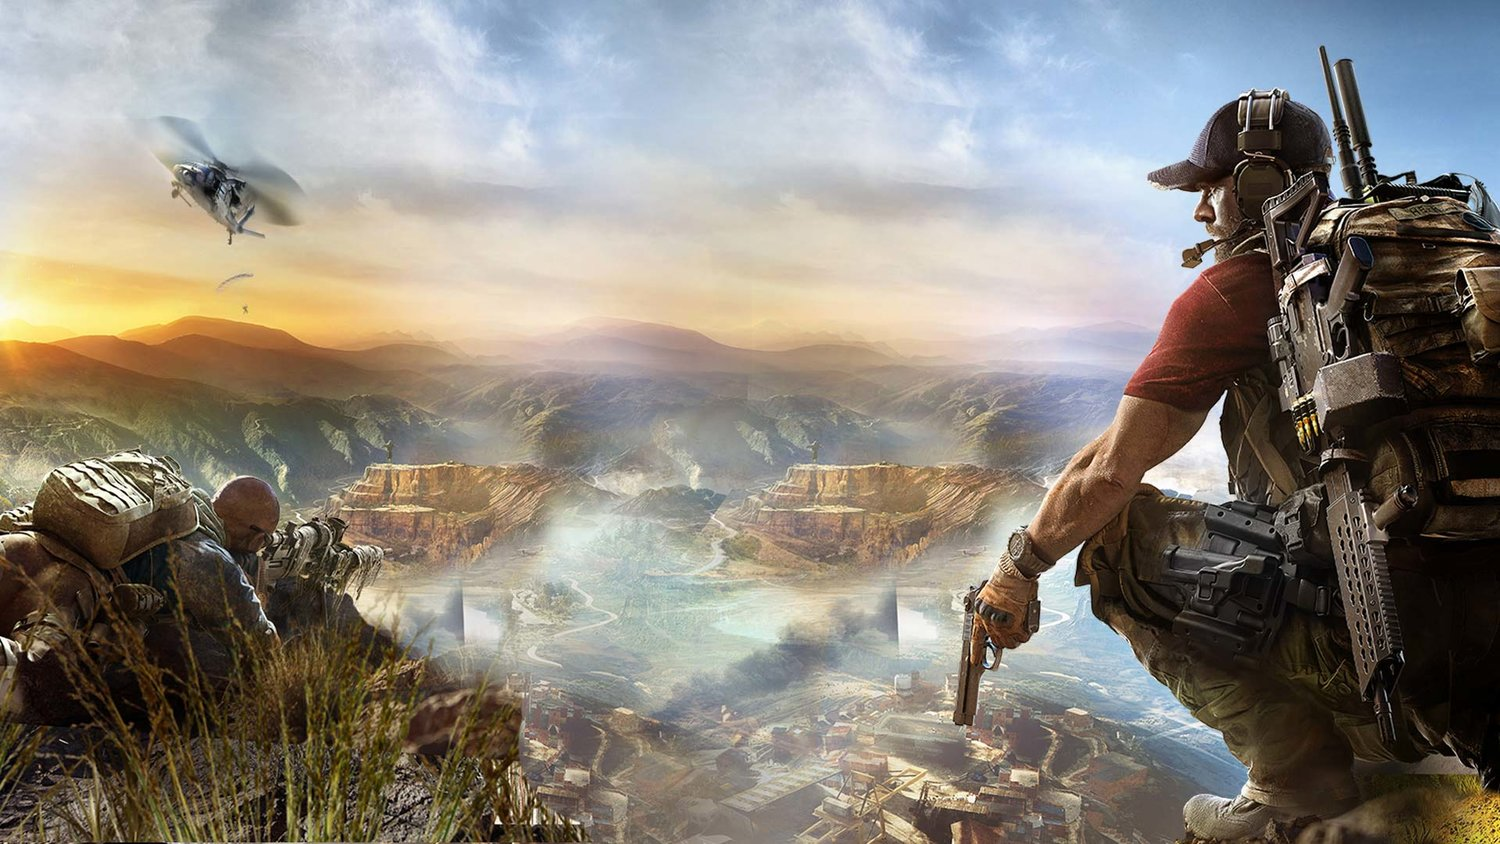 Check Out the Amazing World of GHOST RECON: WILDLANDS and Win Yourself a Copy